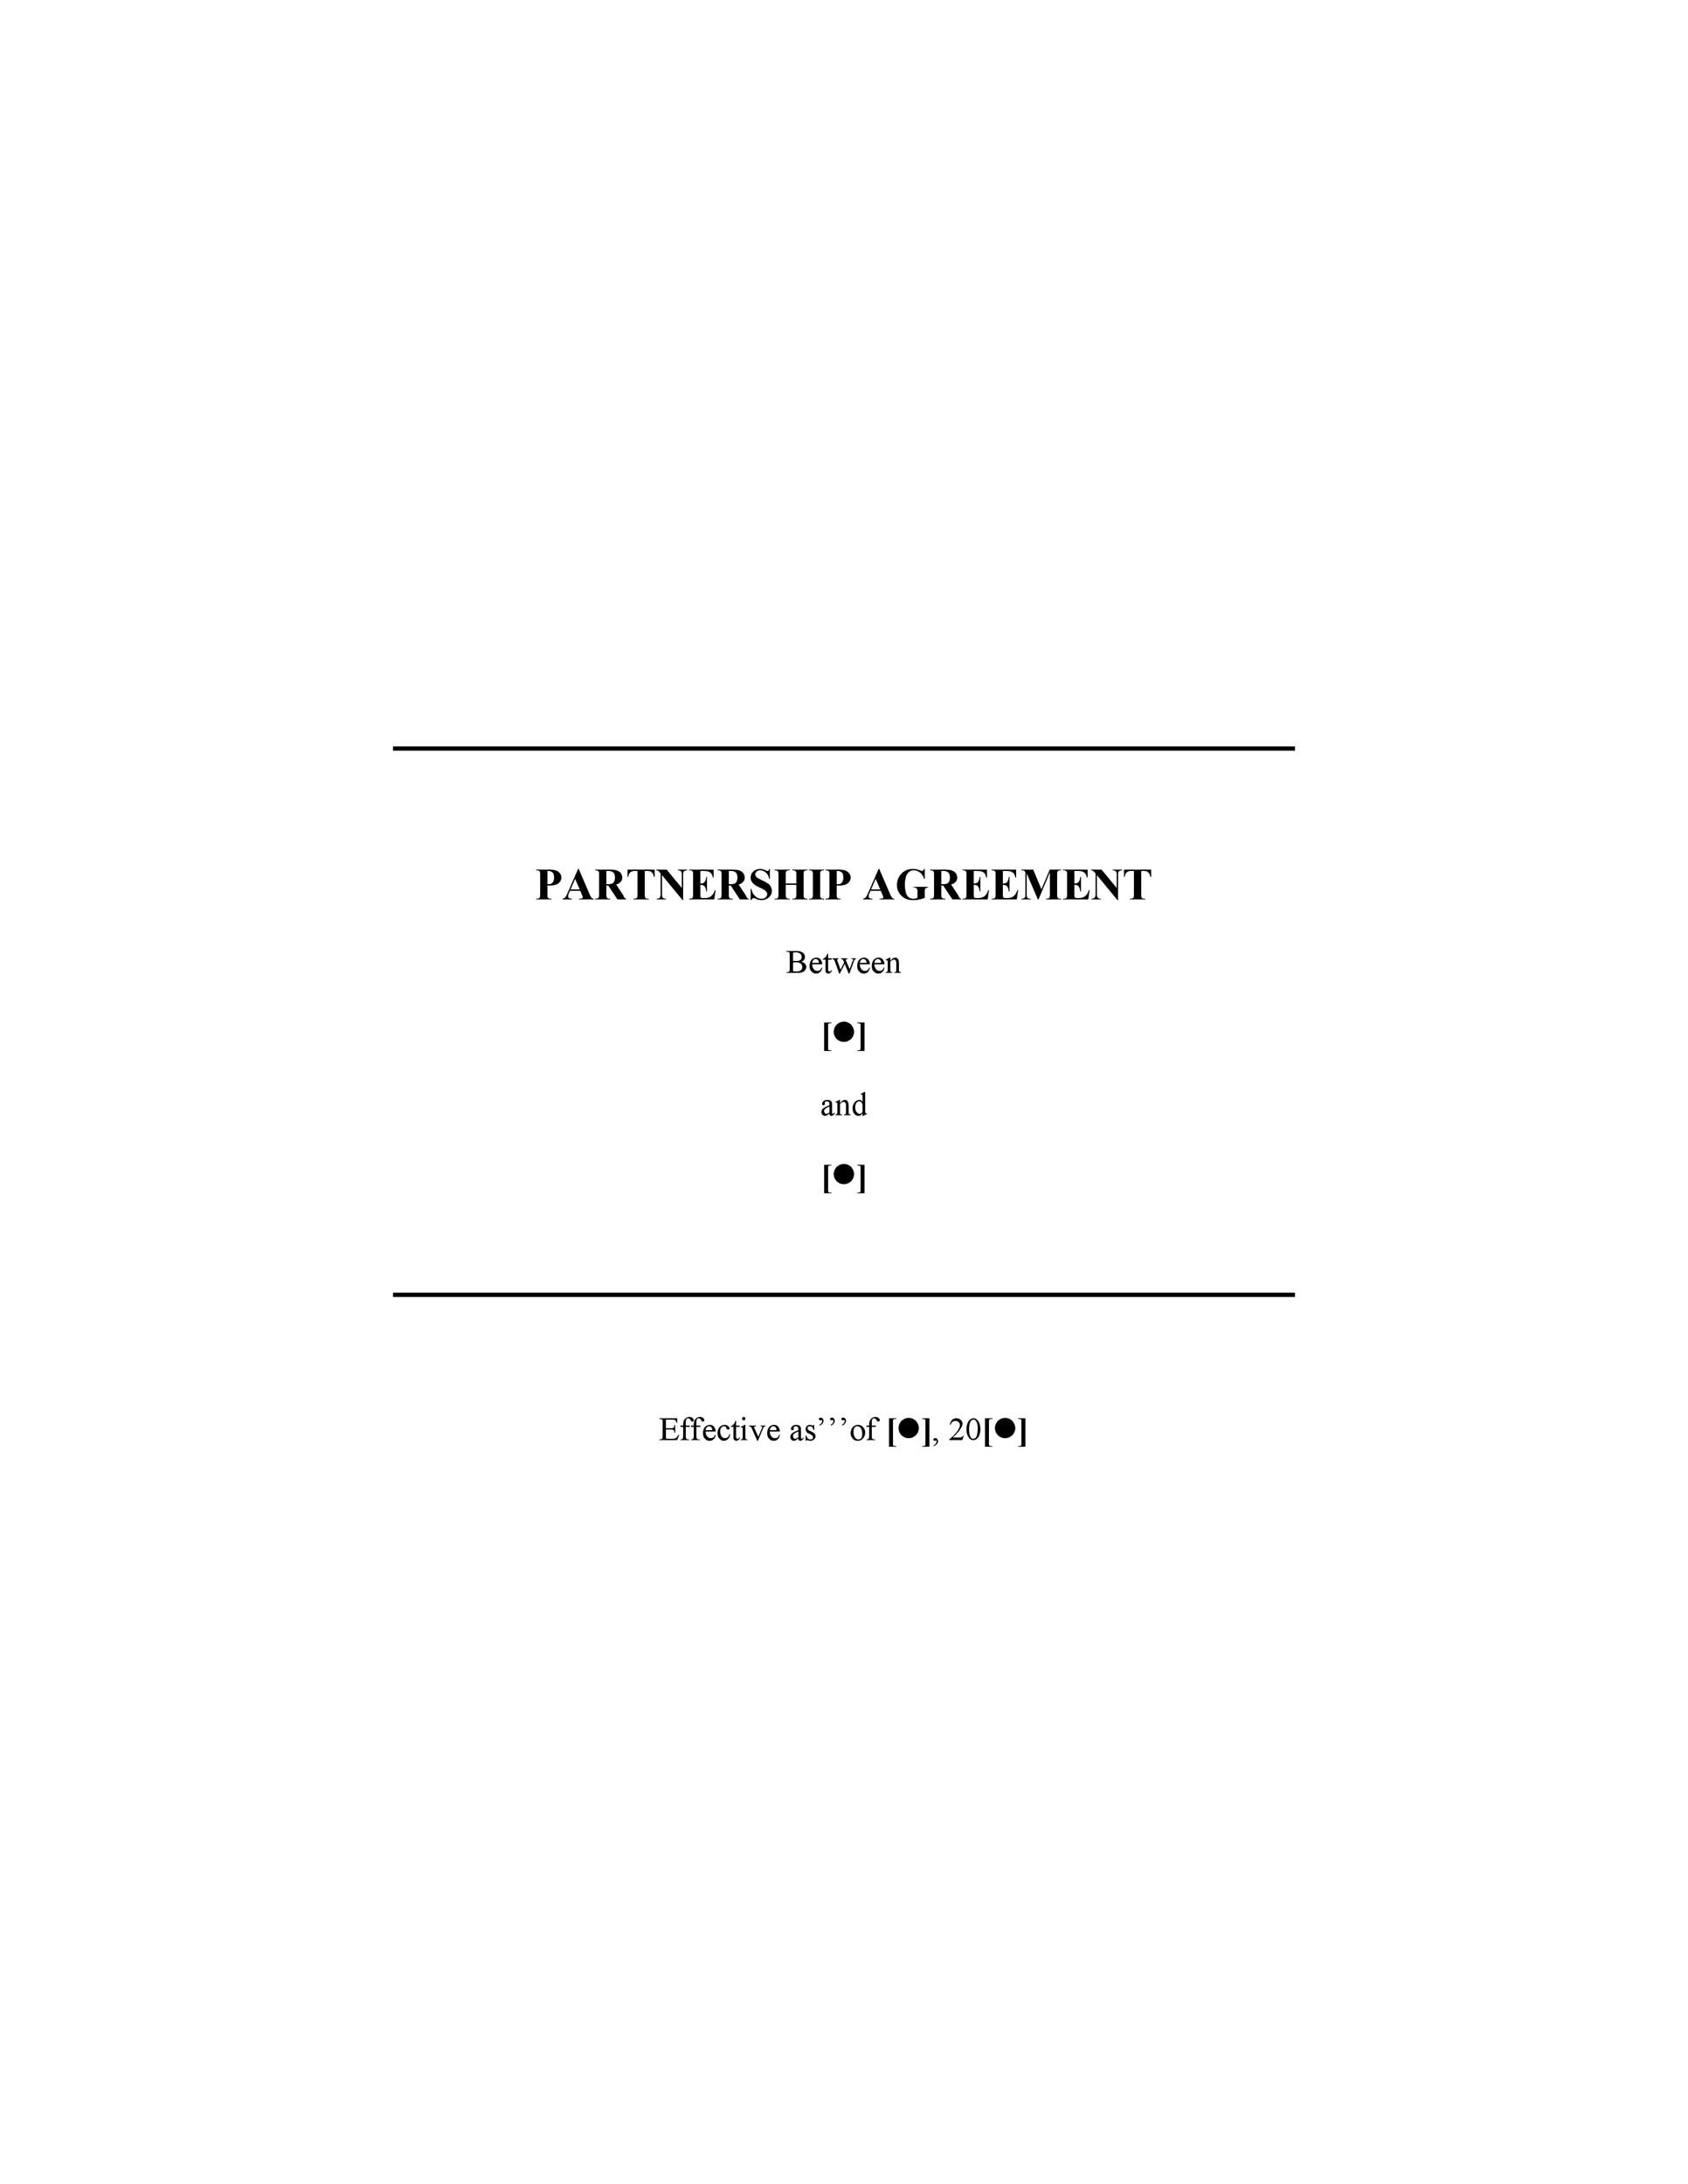 40+ FREE Partnership Agreement Templates (Business, General) - free business agreement template